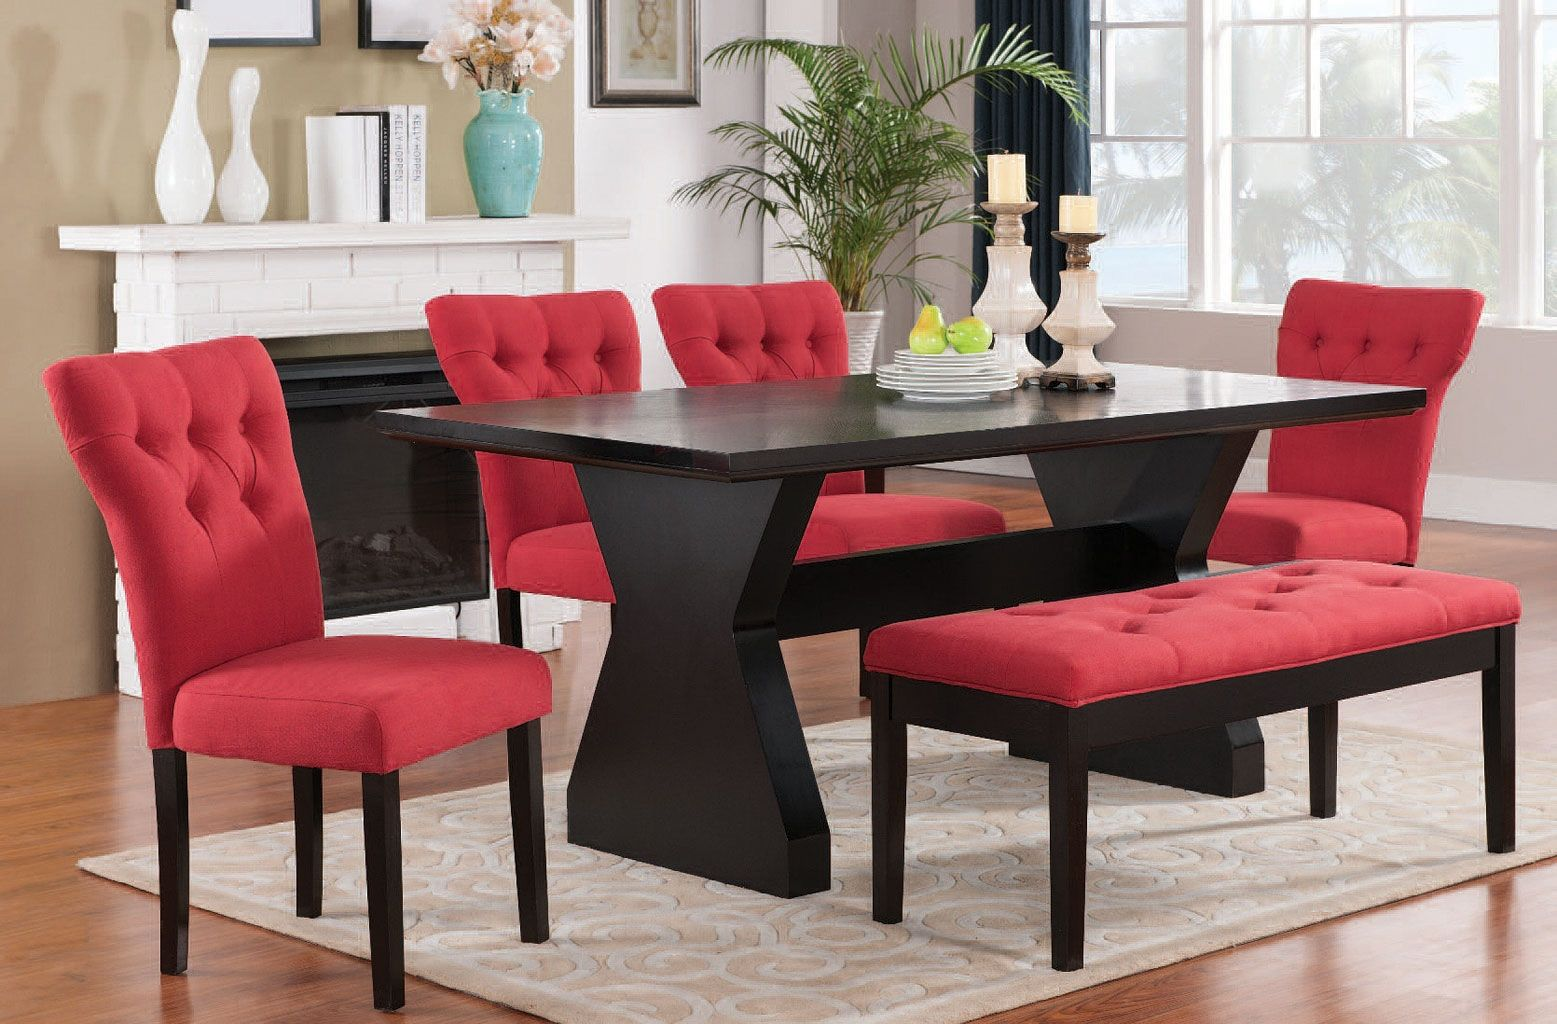 Black Kitchen Table With Red Chairs